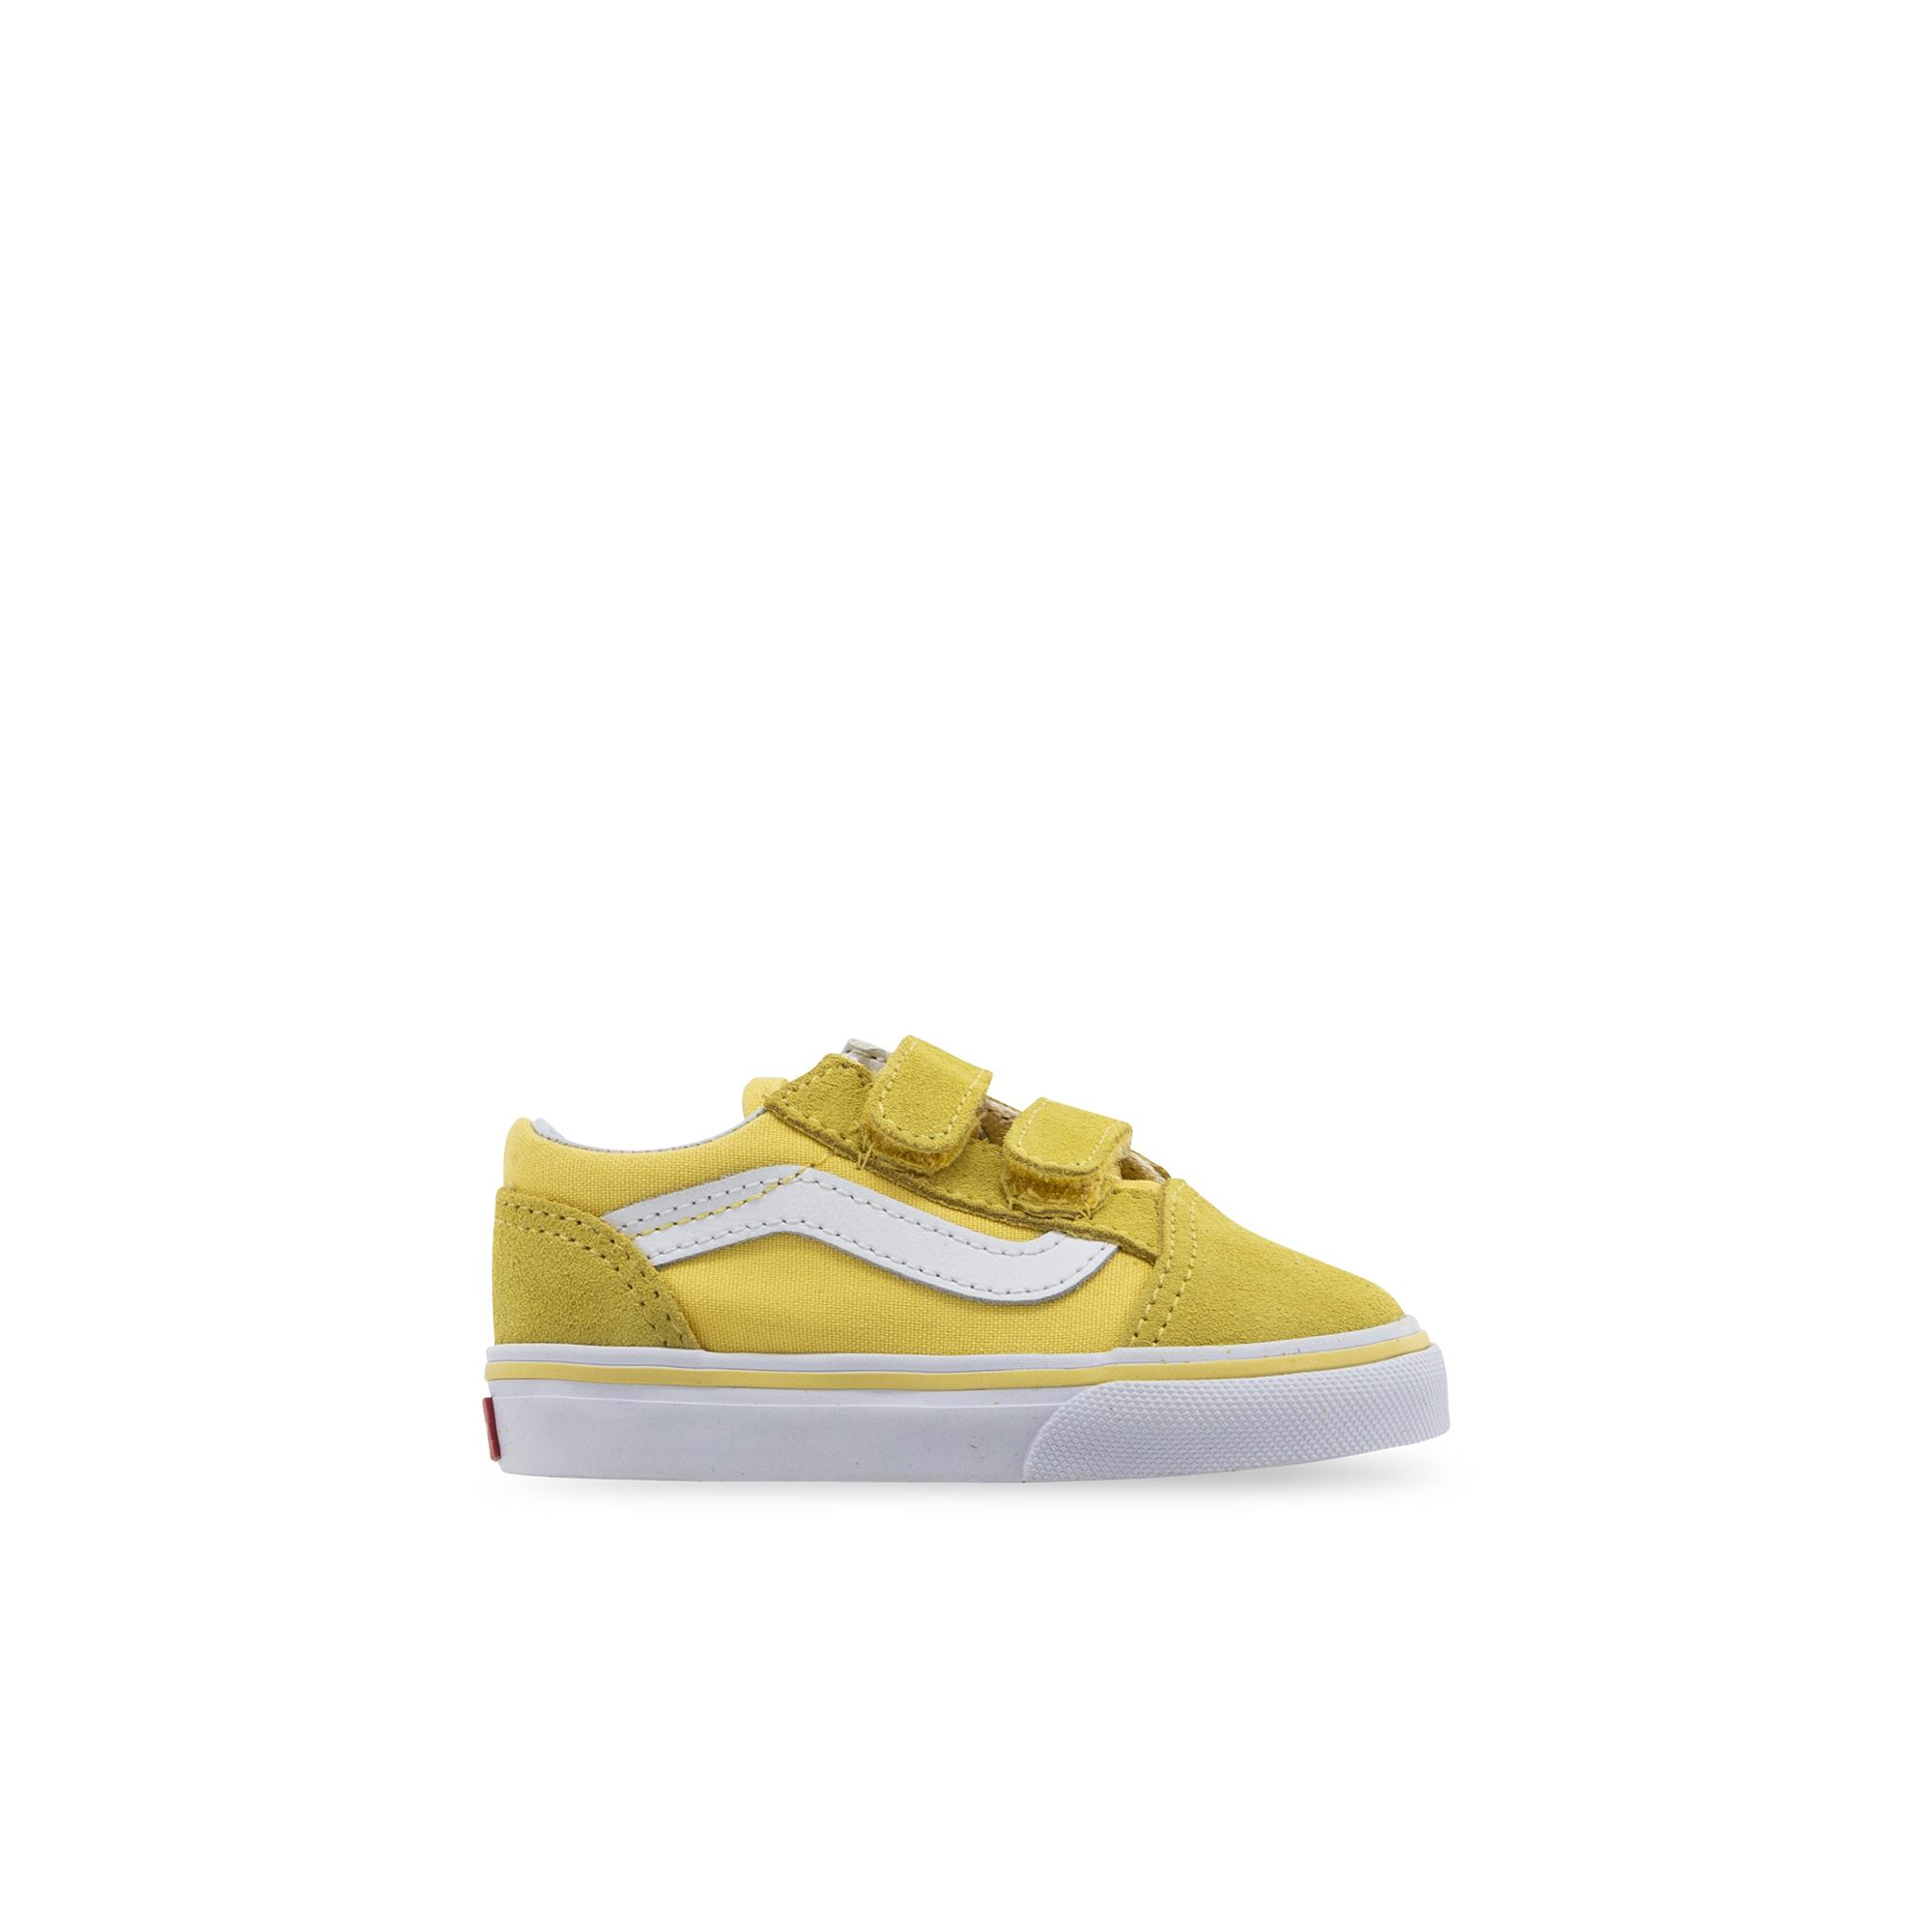 Newborn Shoes Vans Toddler Old Skool Velcro Aspen Gold